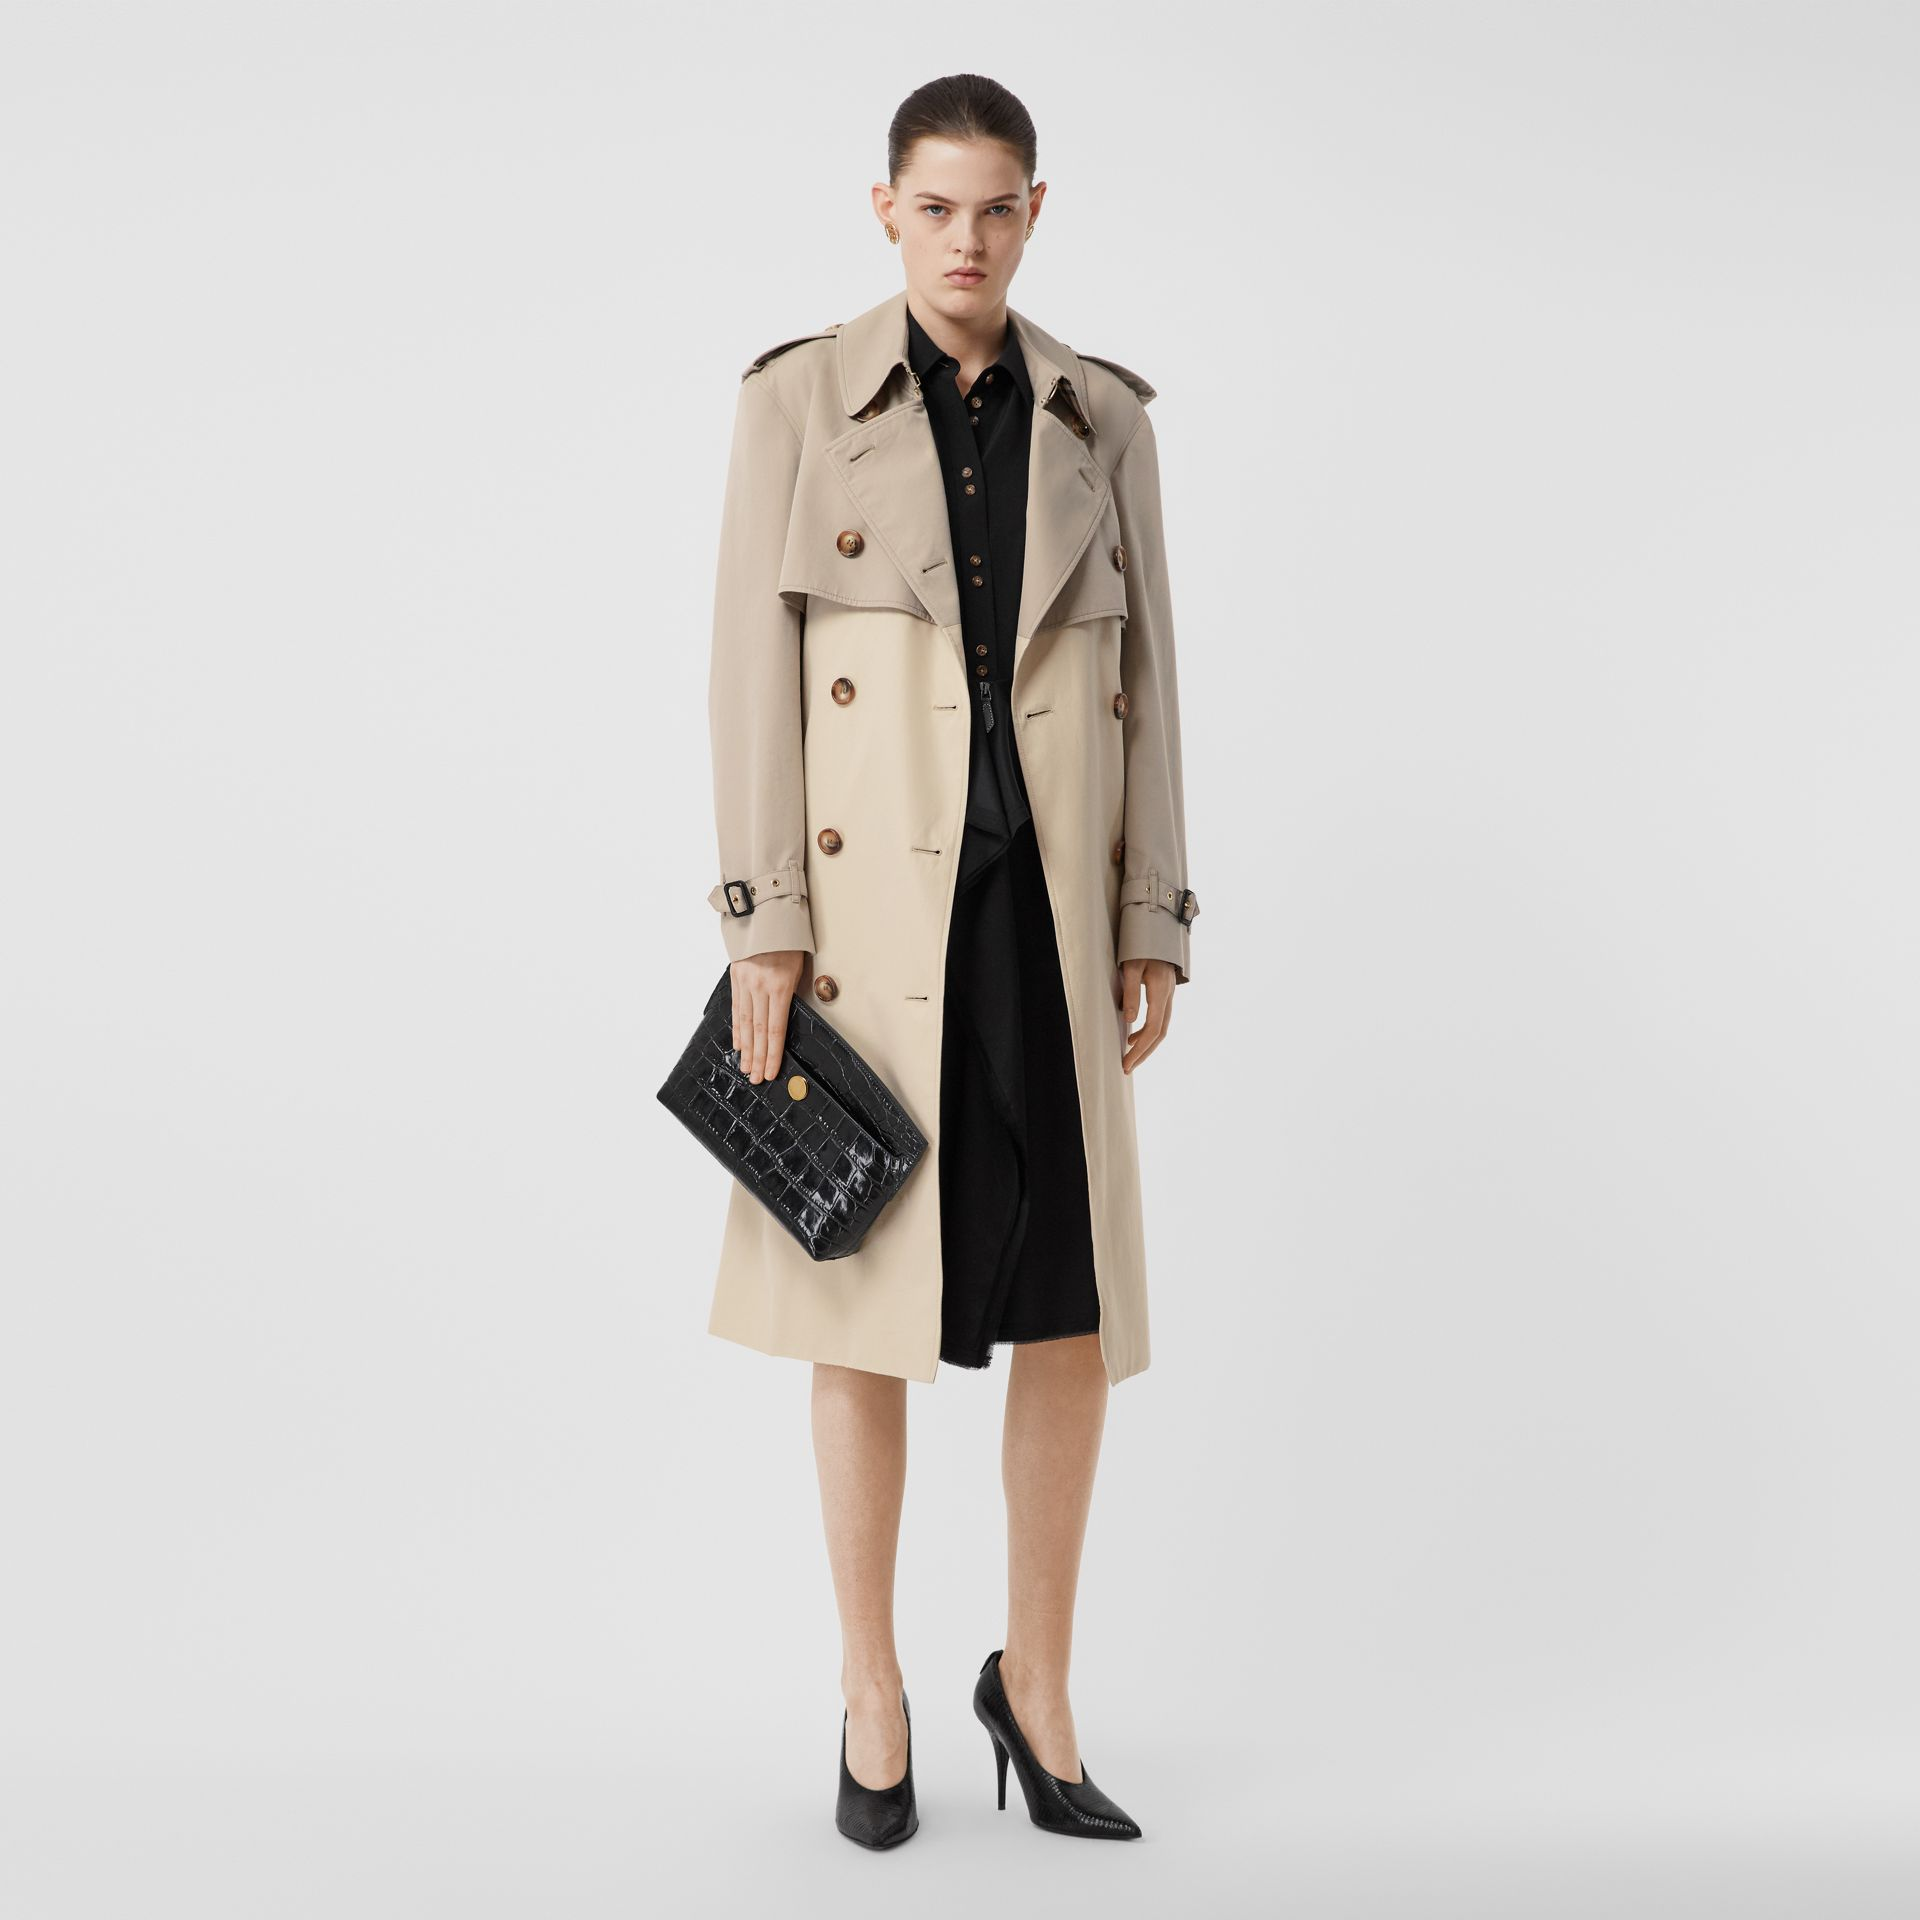 Two-tone Reconstructed Trench Coat in Light Sand - Women | Burberry United Kingdom - gallery image 5